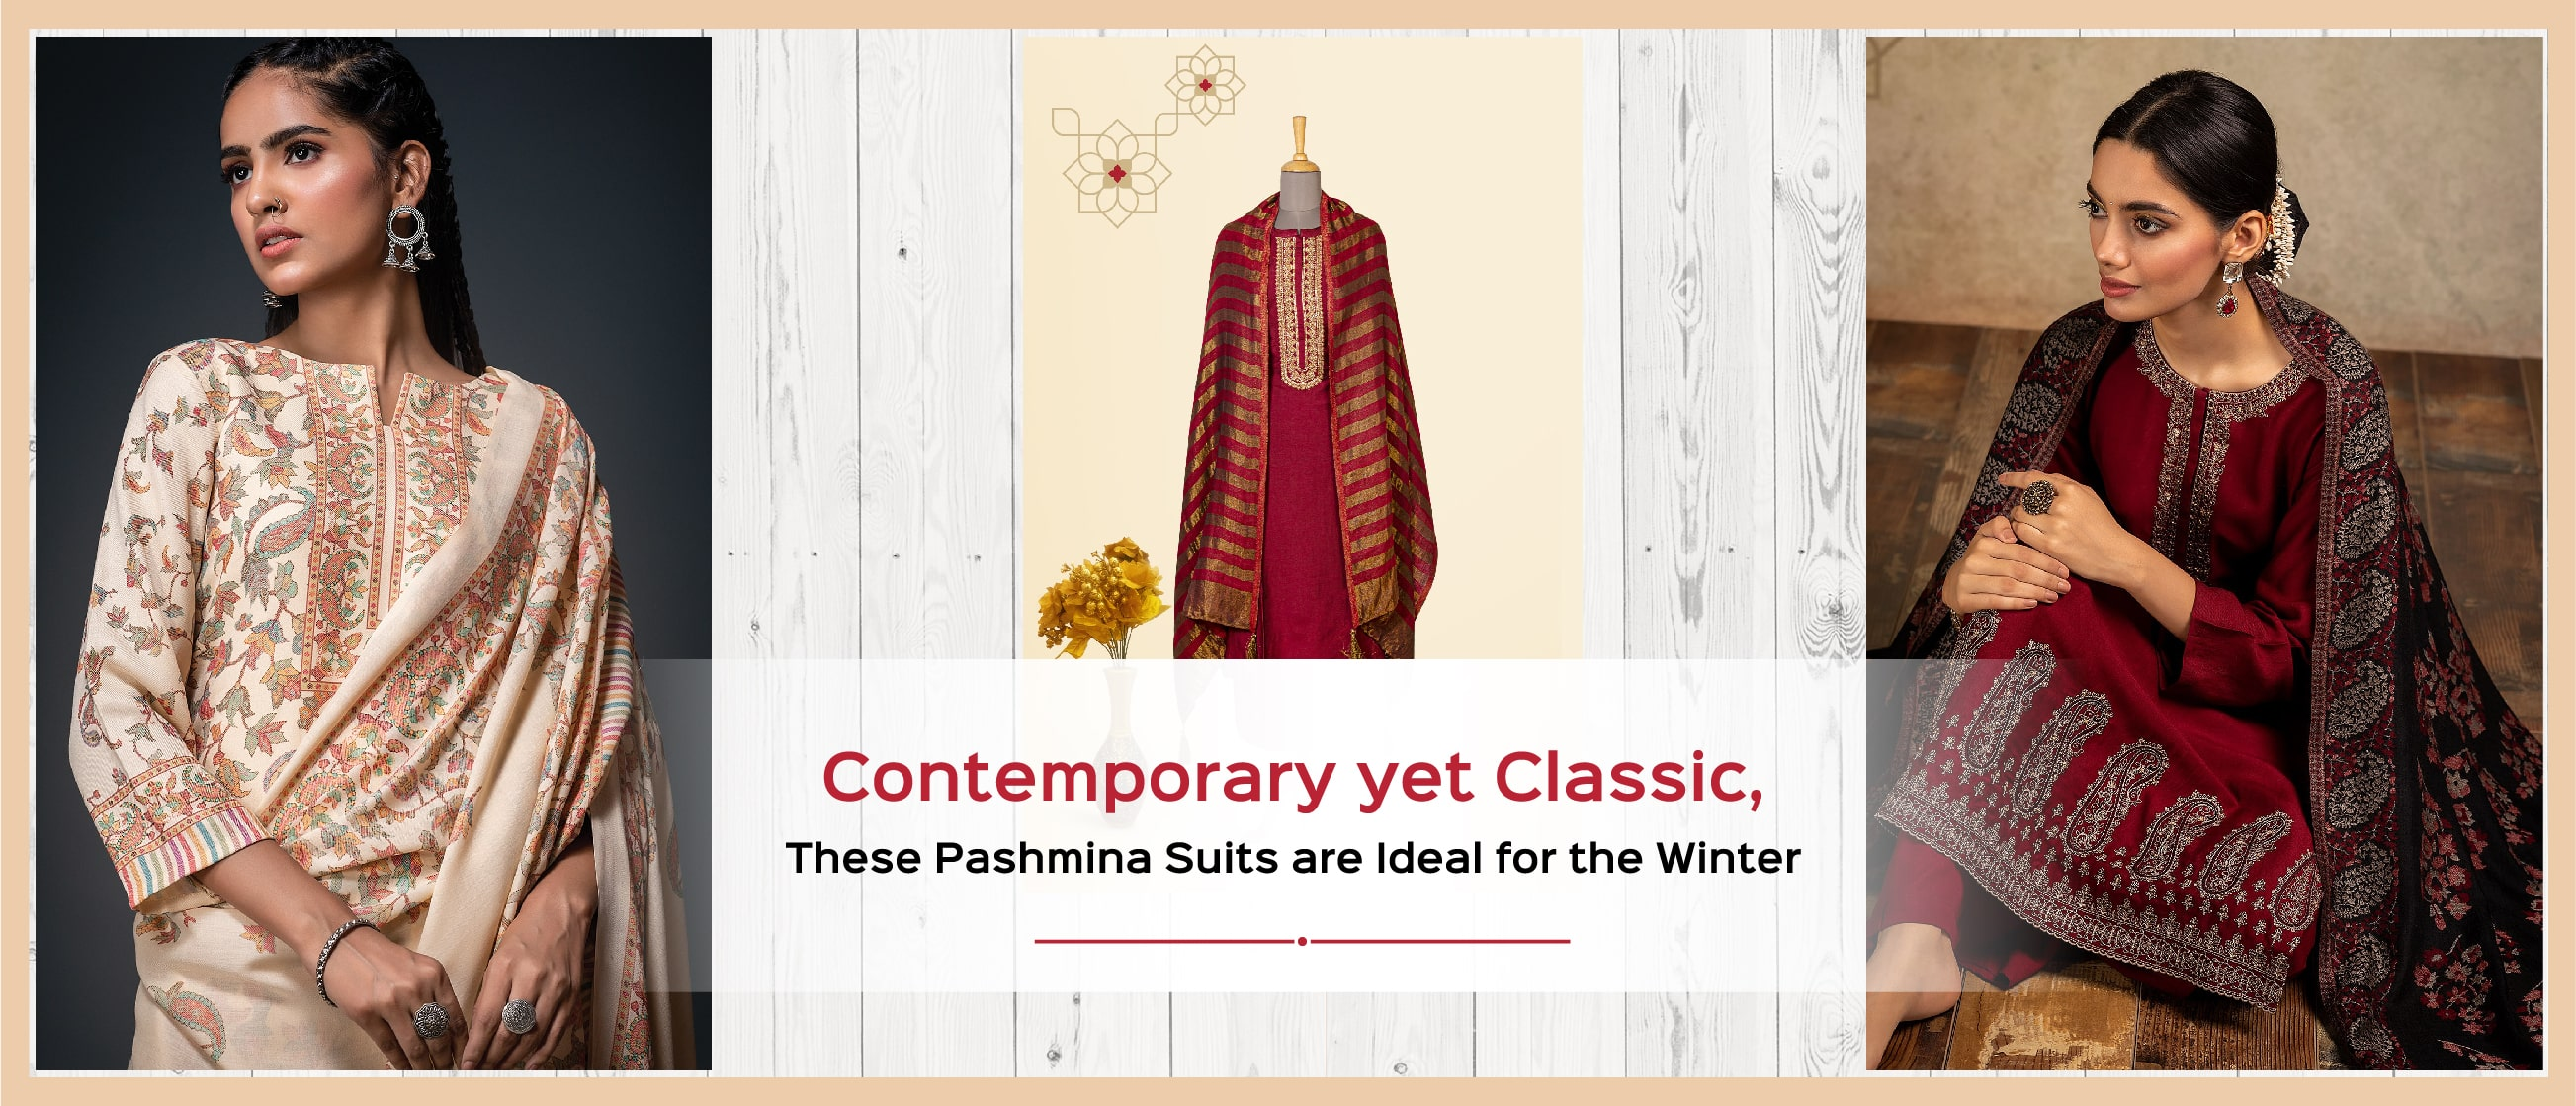 Contemporary yet Classic, These Pashmina Suits are Ideal for the Winter